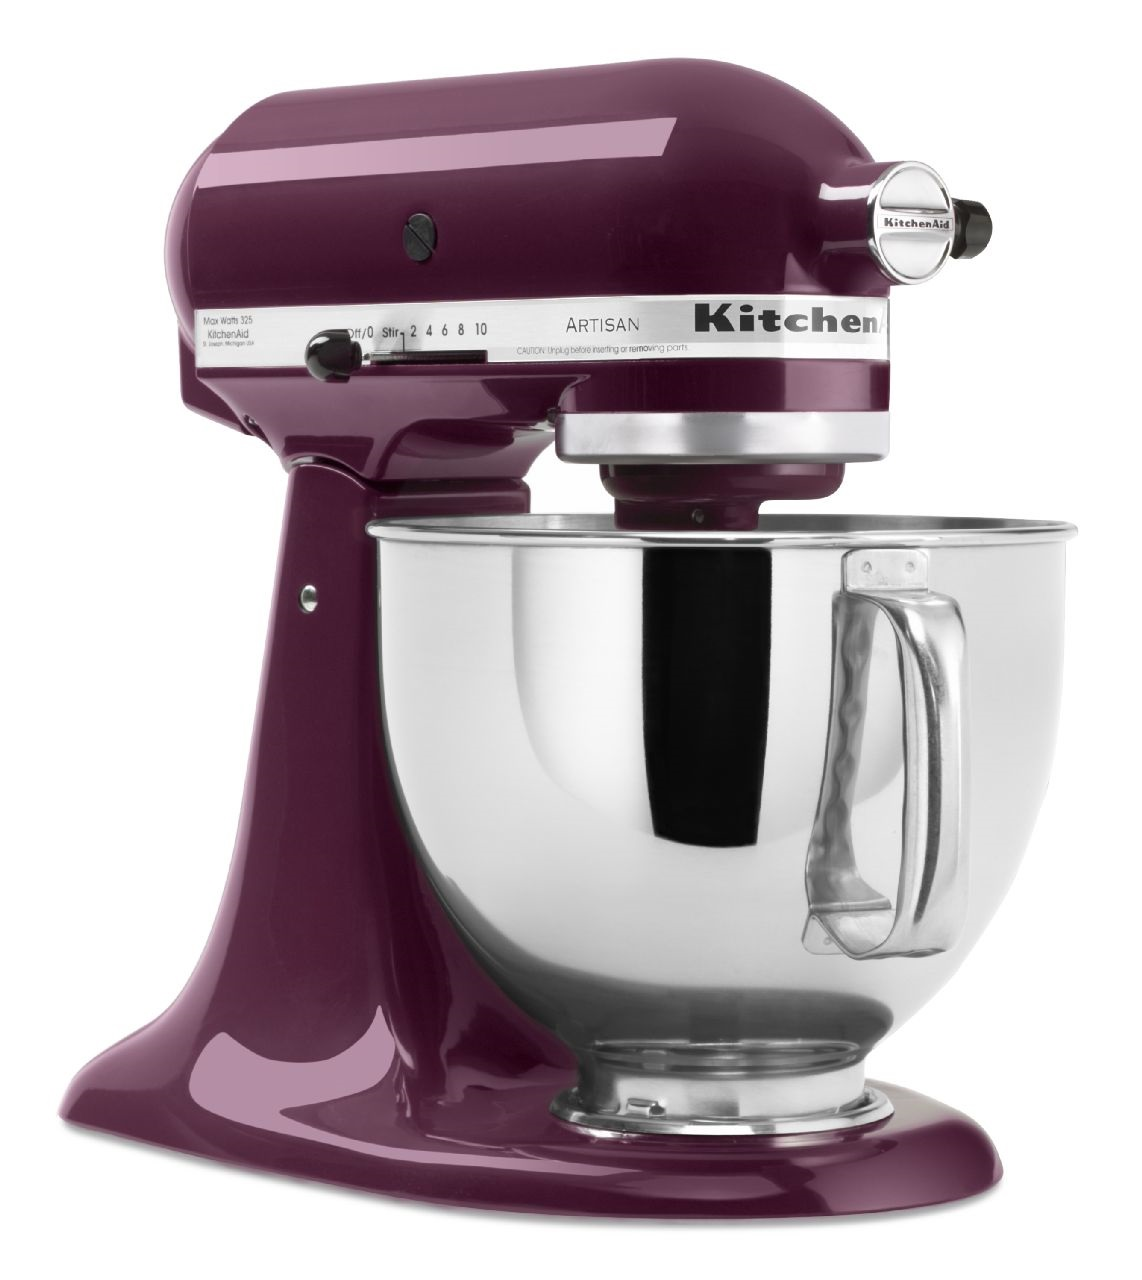 KitchenAid Artisan Series 5 Qt Tilt Head Stand Mixer Refurbished  RRK150  eBay